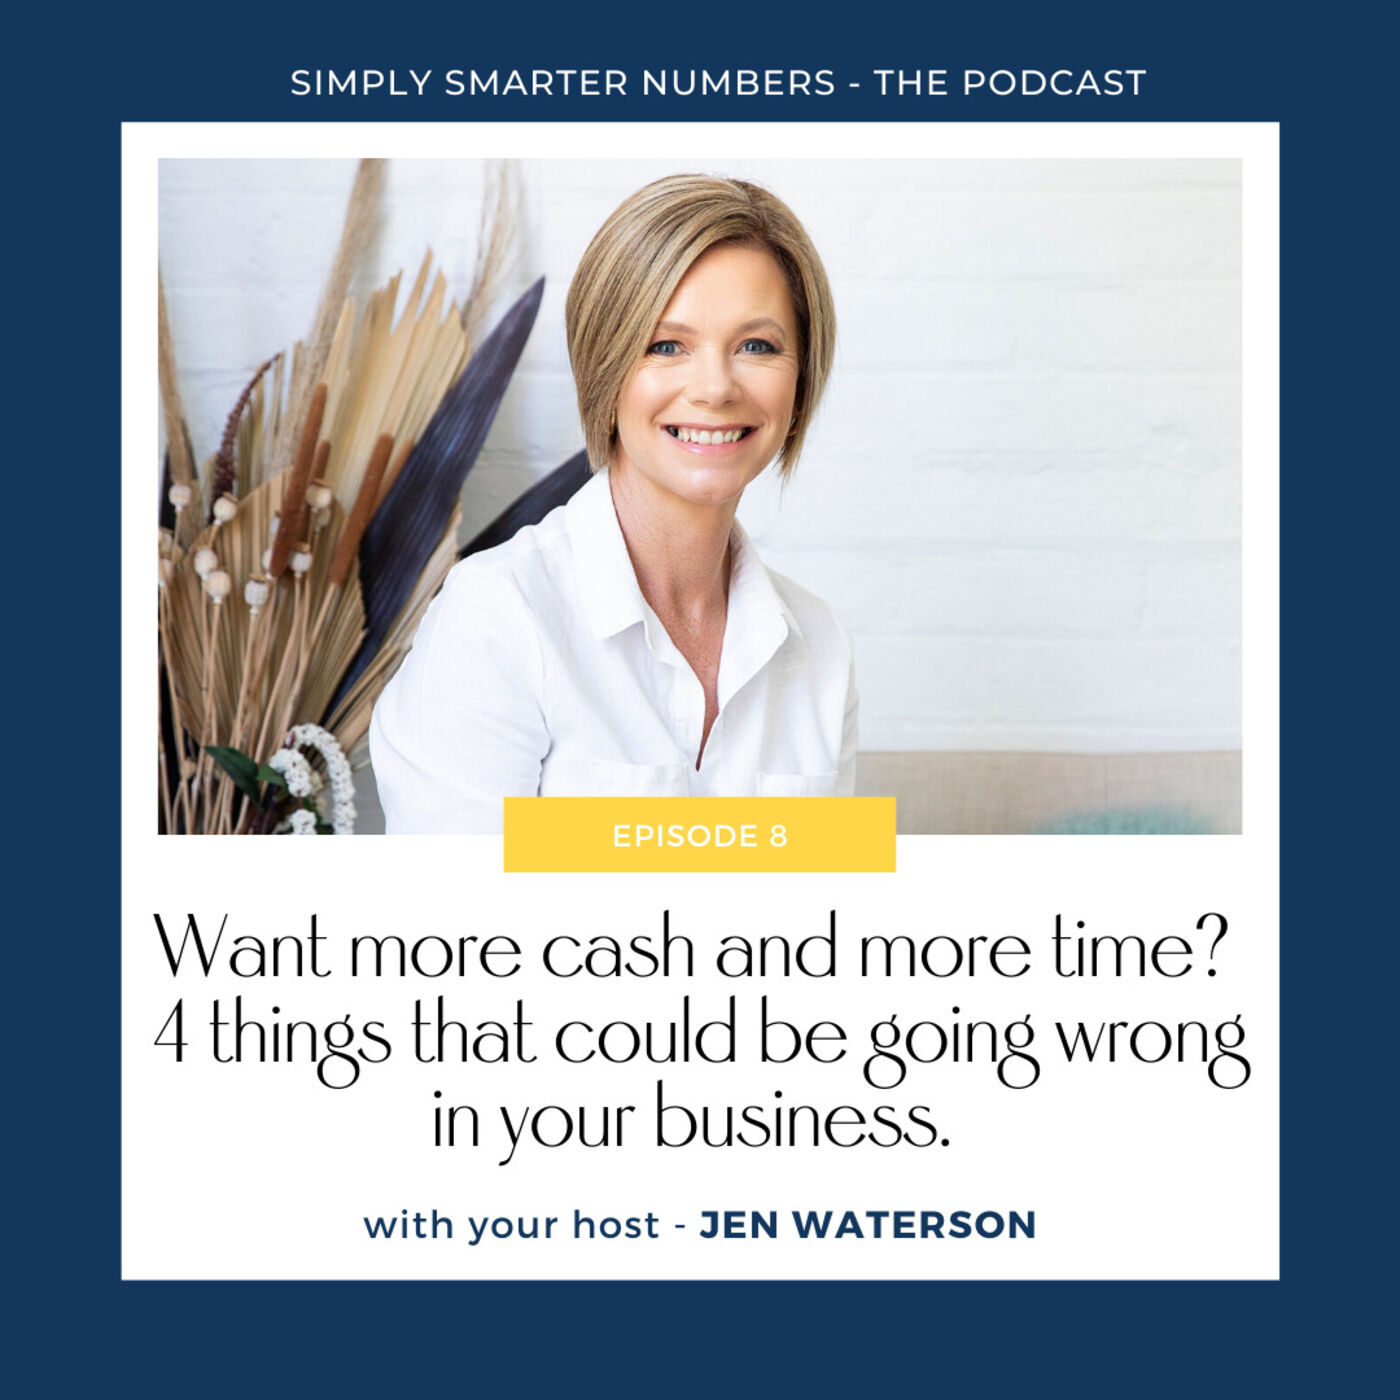 Want more cash and more time? 4 things that could be going wrong in your business.